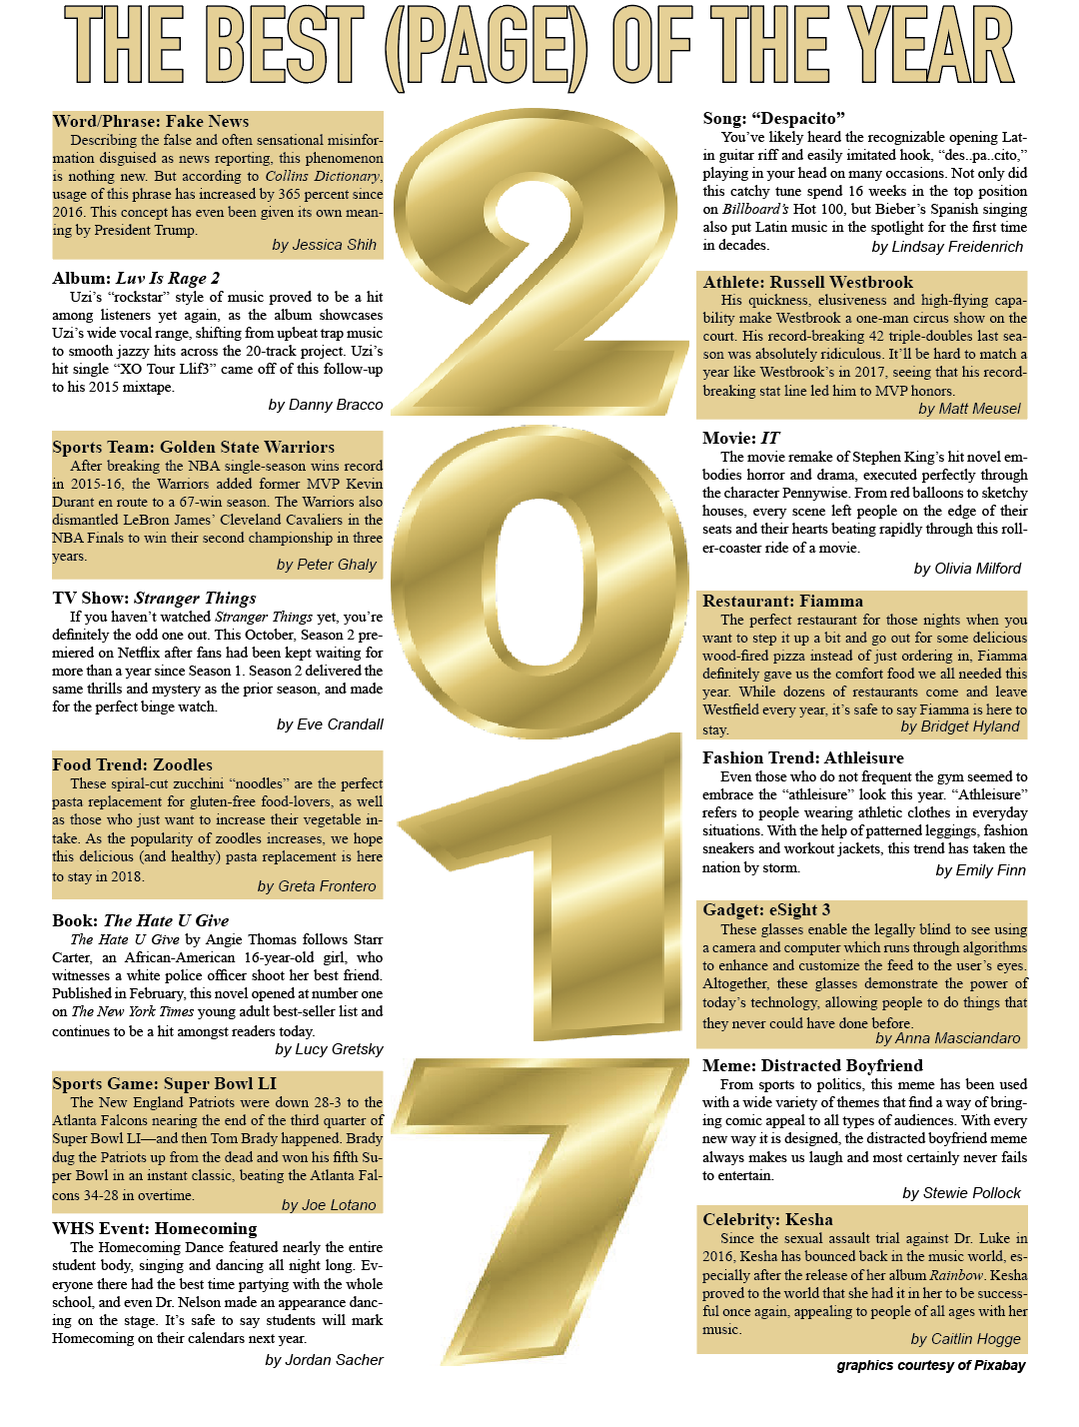 The Best (Page) of the Year – Hi's Eye